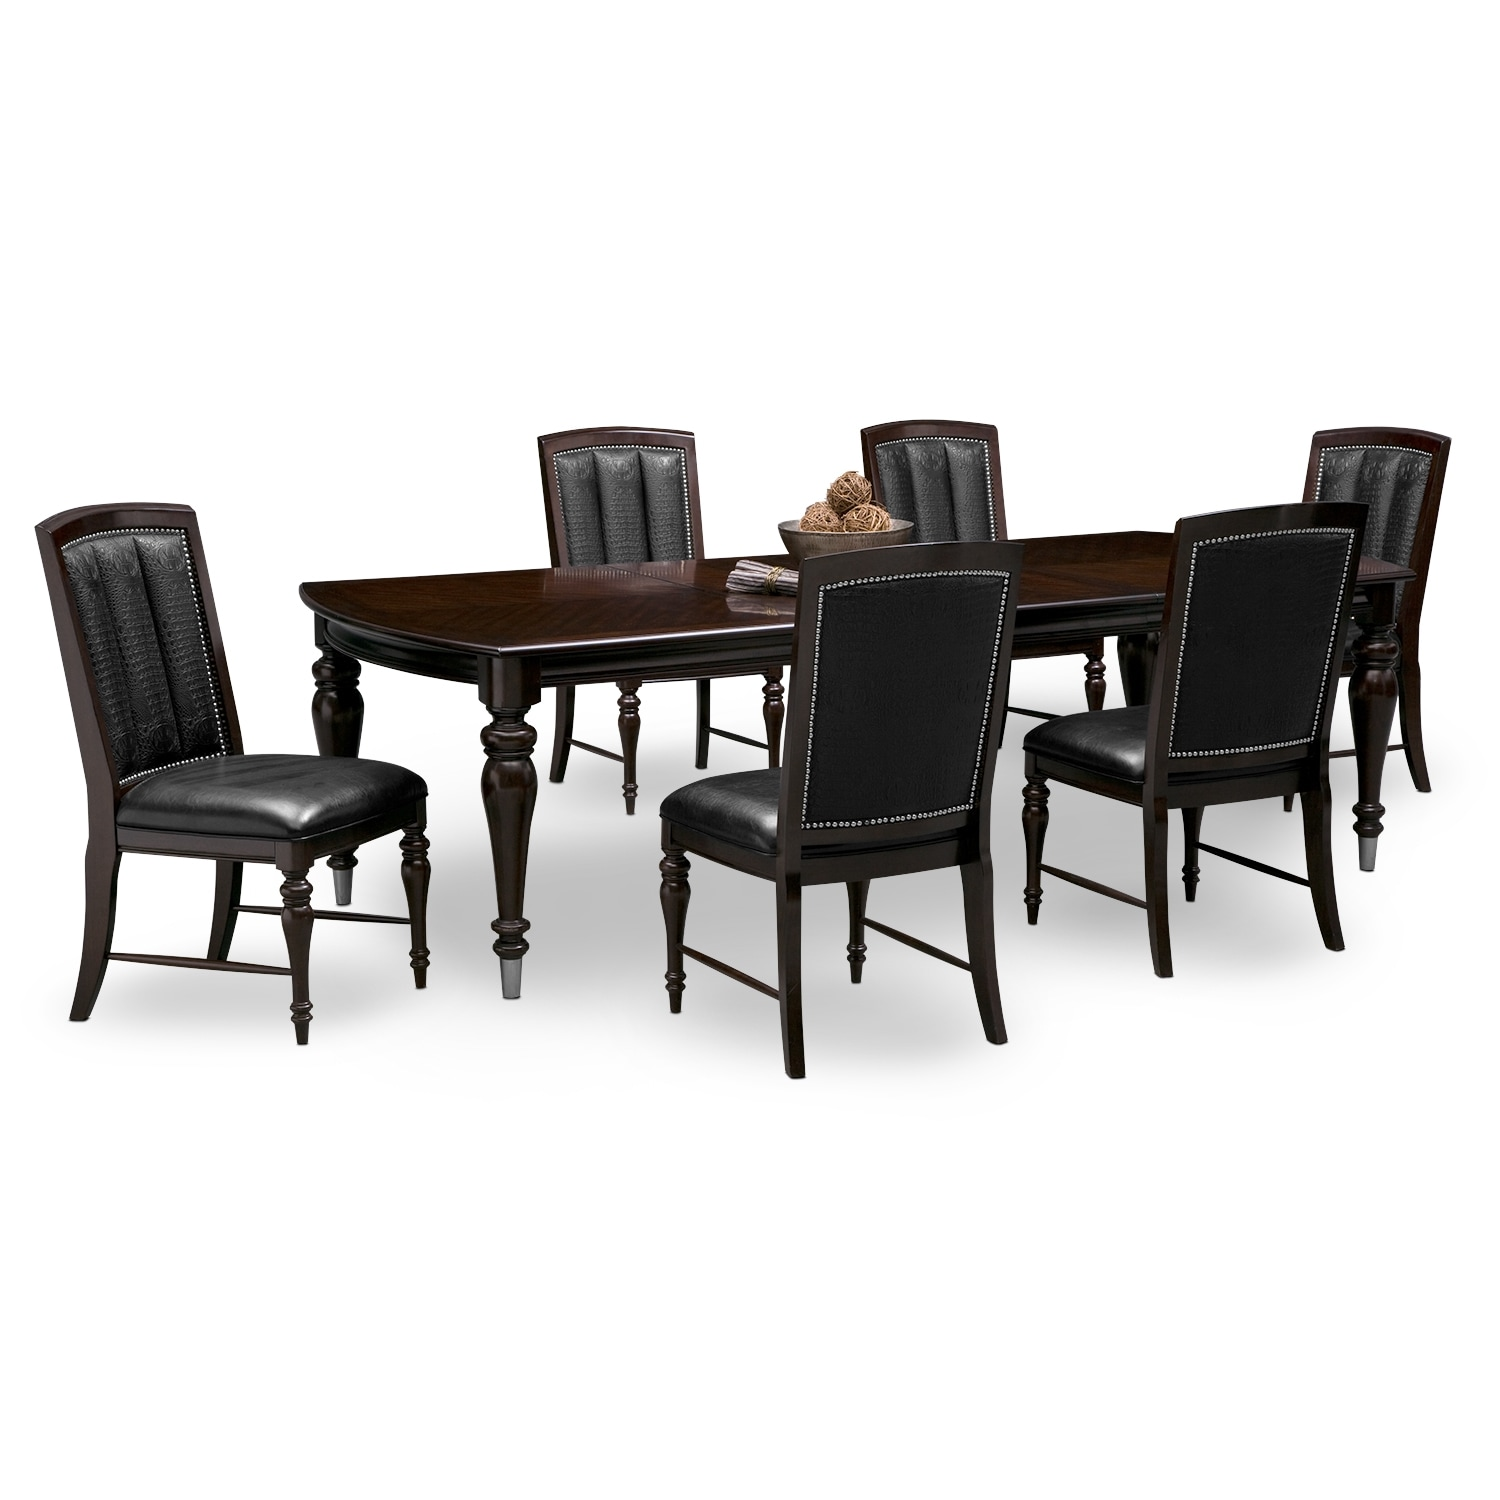 Dining Room Furniture - Esquire Table and 6 Chairs - Cherry  sc 1 st  American Signature Furniture & Esquire Table and 6 Chairs - Cherry | American Signature Furniture